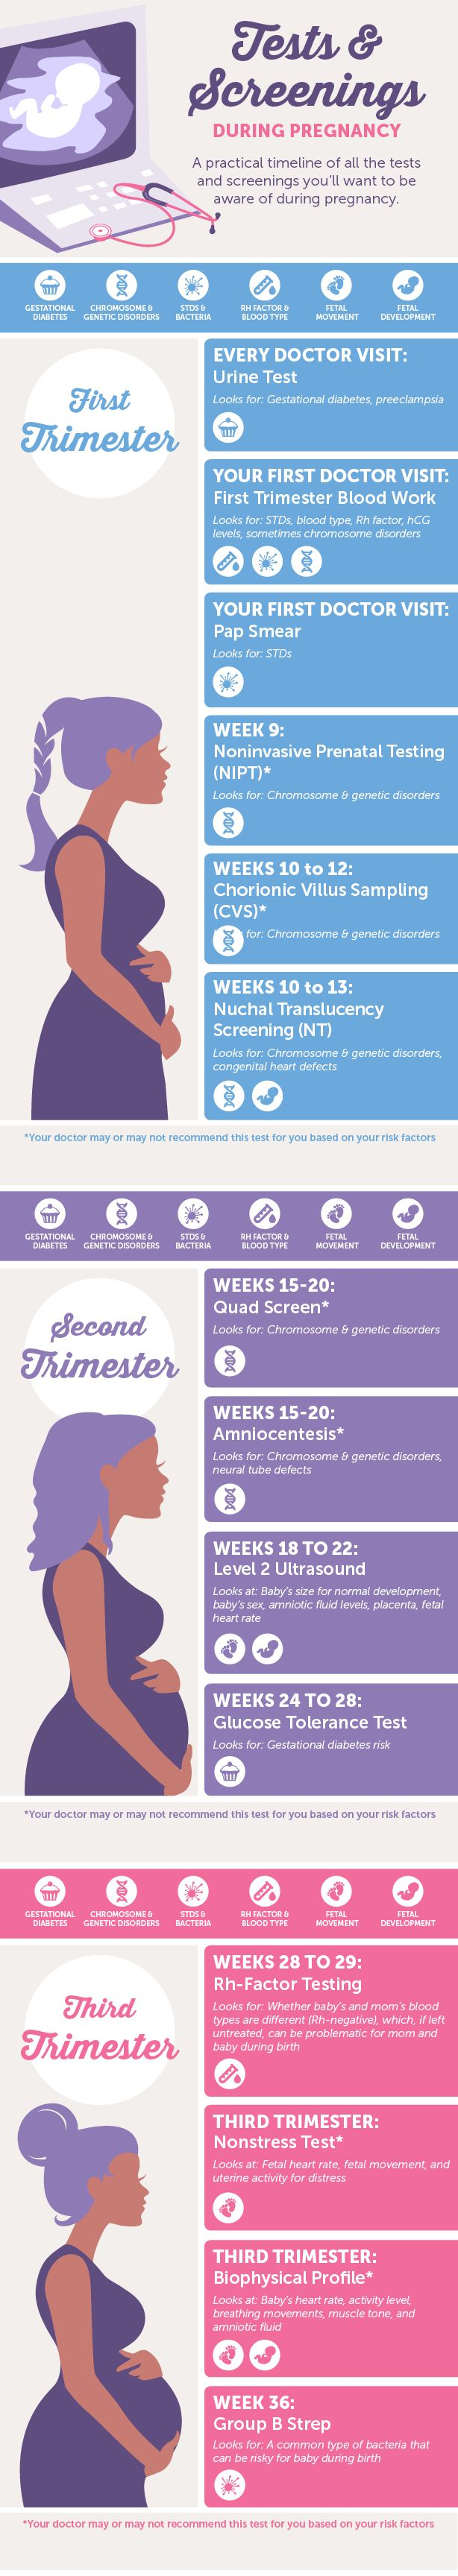 A Guide to Tests & Screenings During Pregnancy